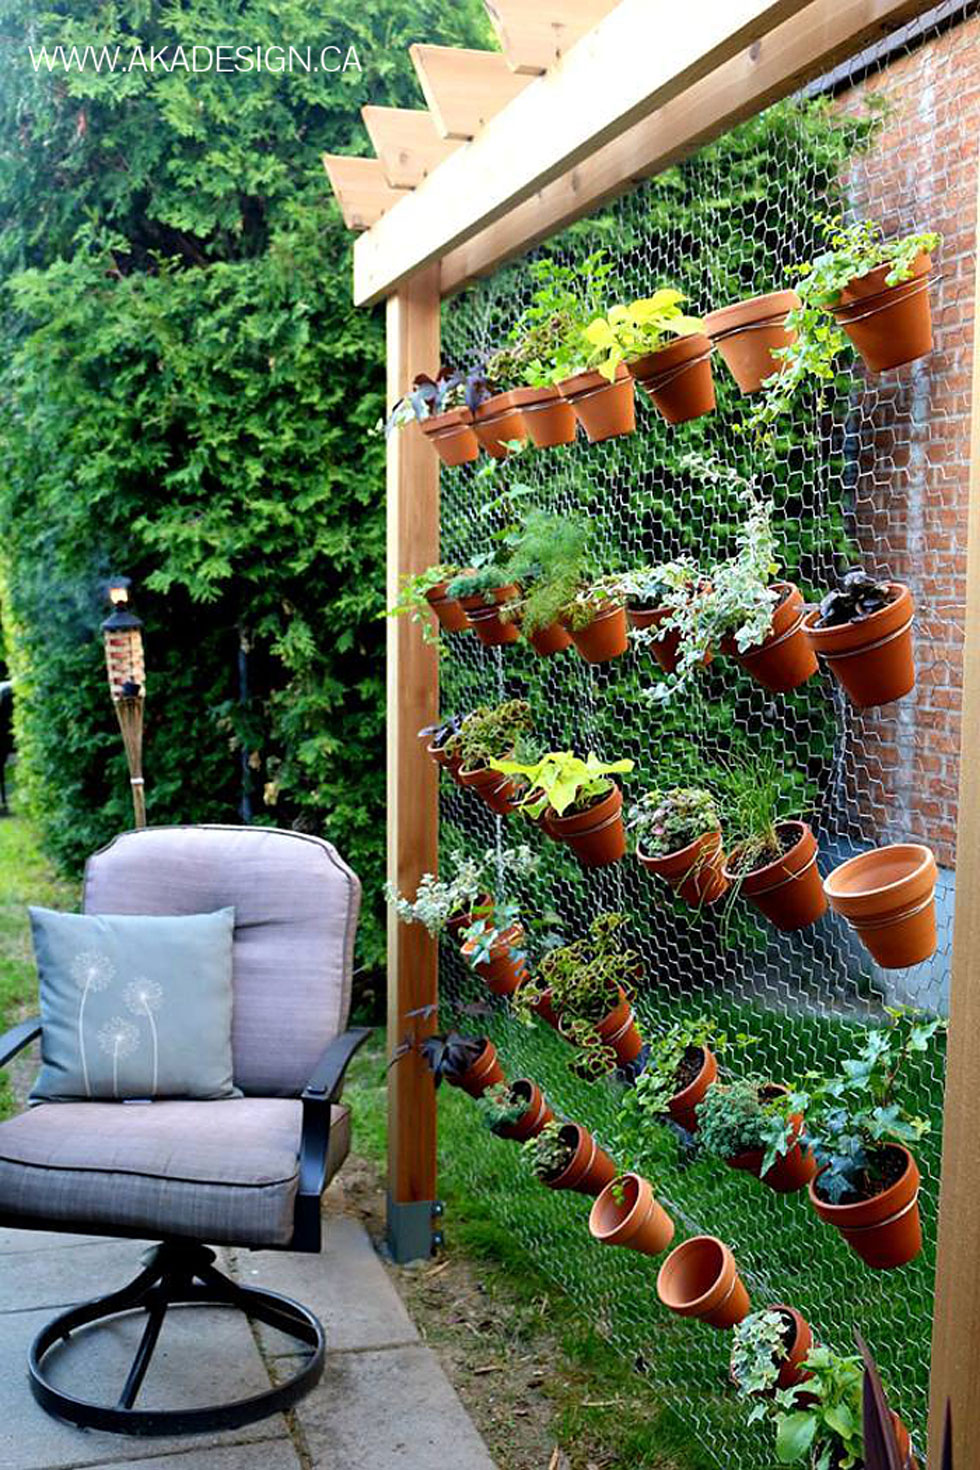 10 More Inspiring Ideas For Recycled And DIY Planters